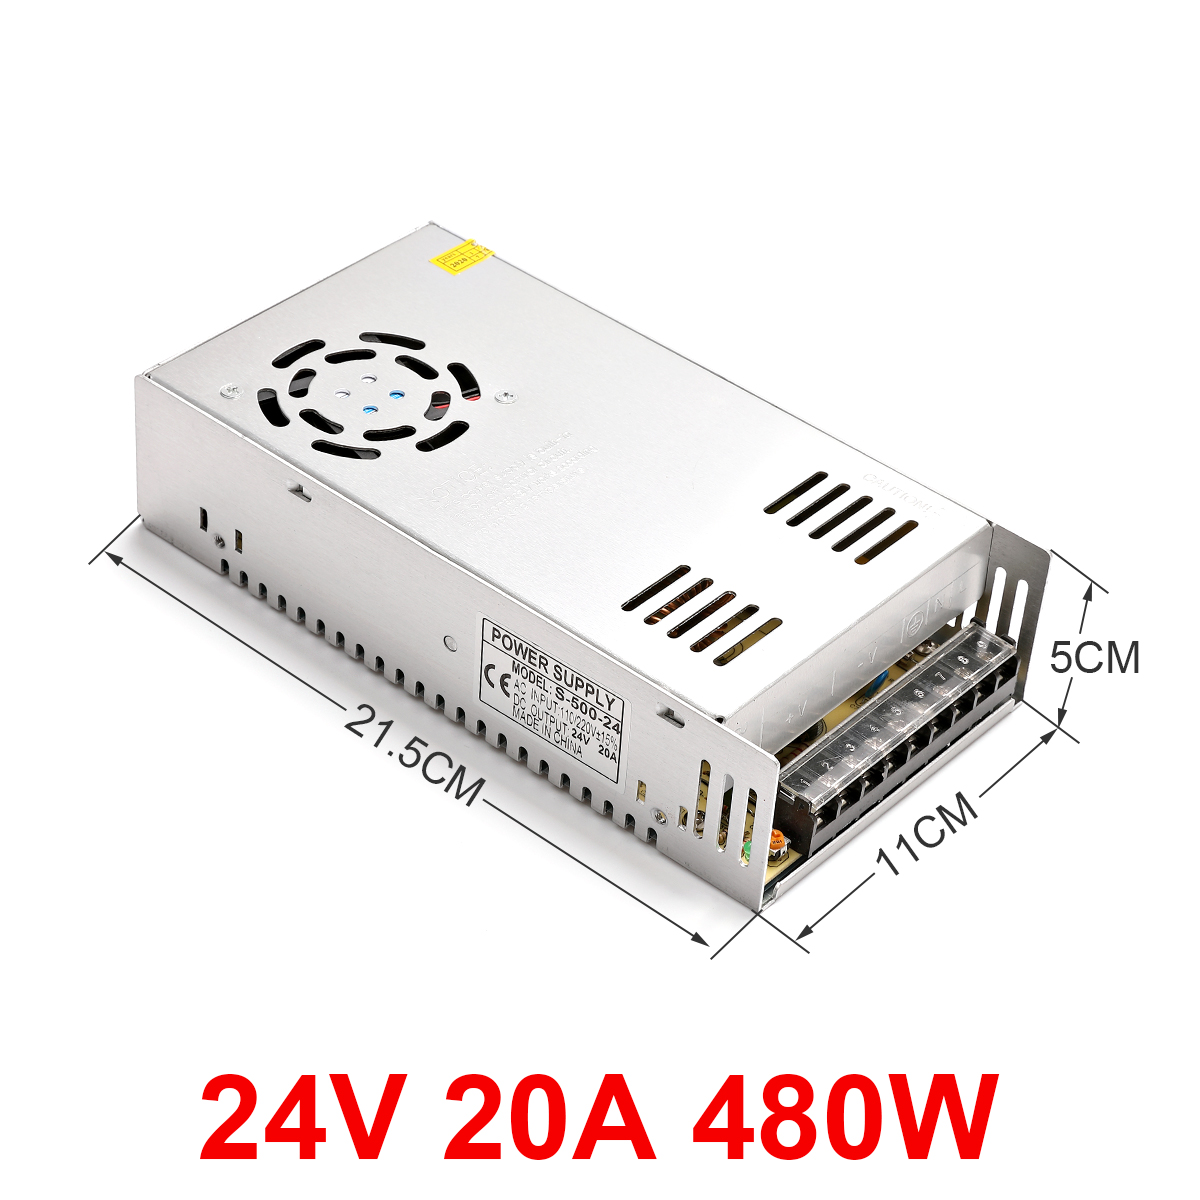 Single output power switch converter module for safe driving of 24 V 10A 20 a 60 a 80 a LED CCTV